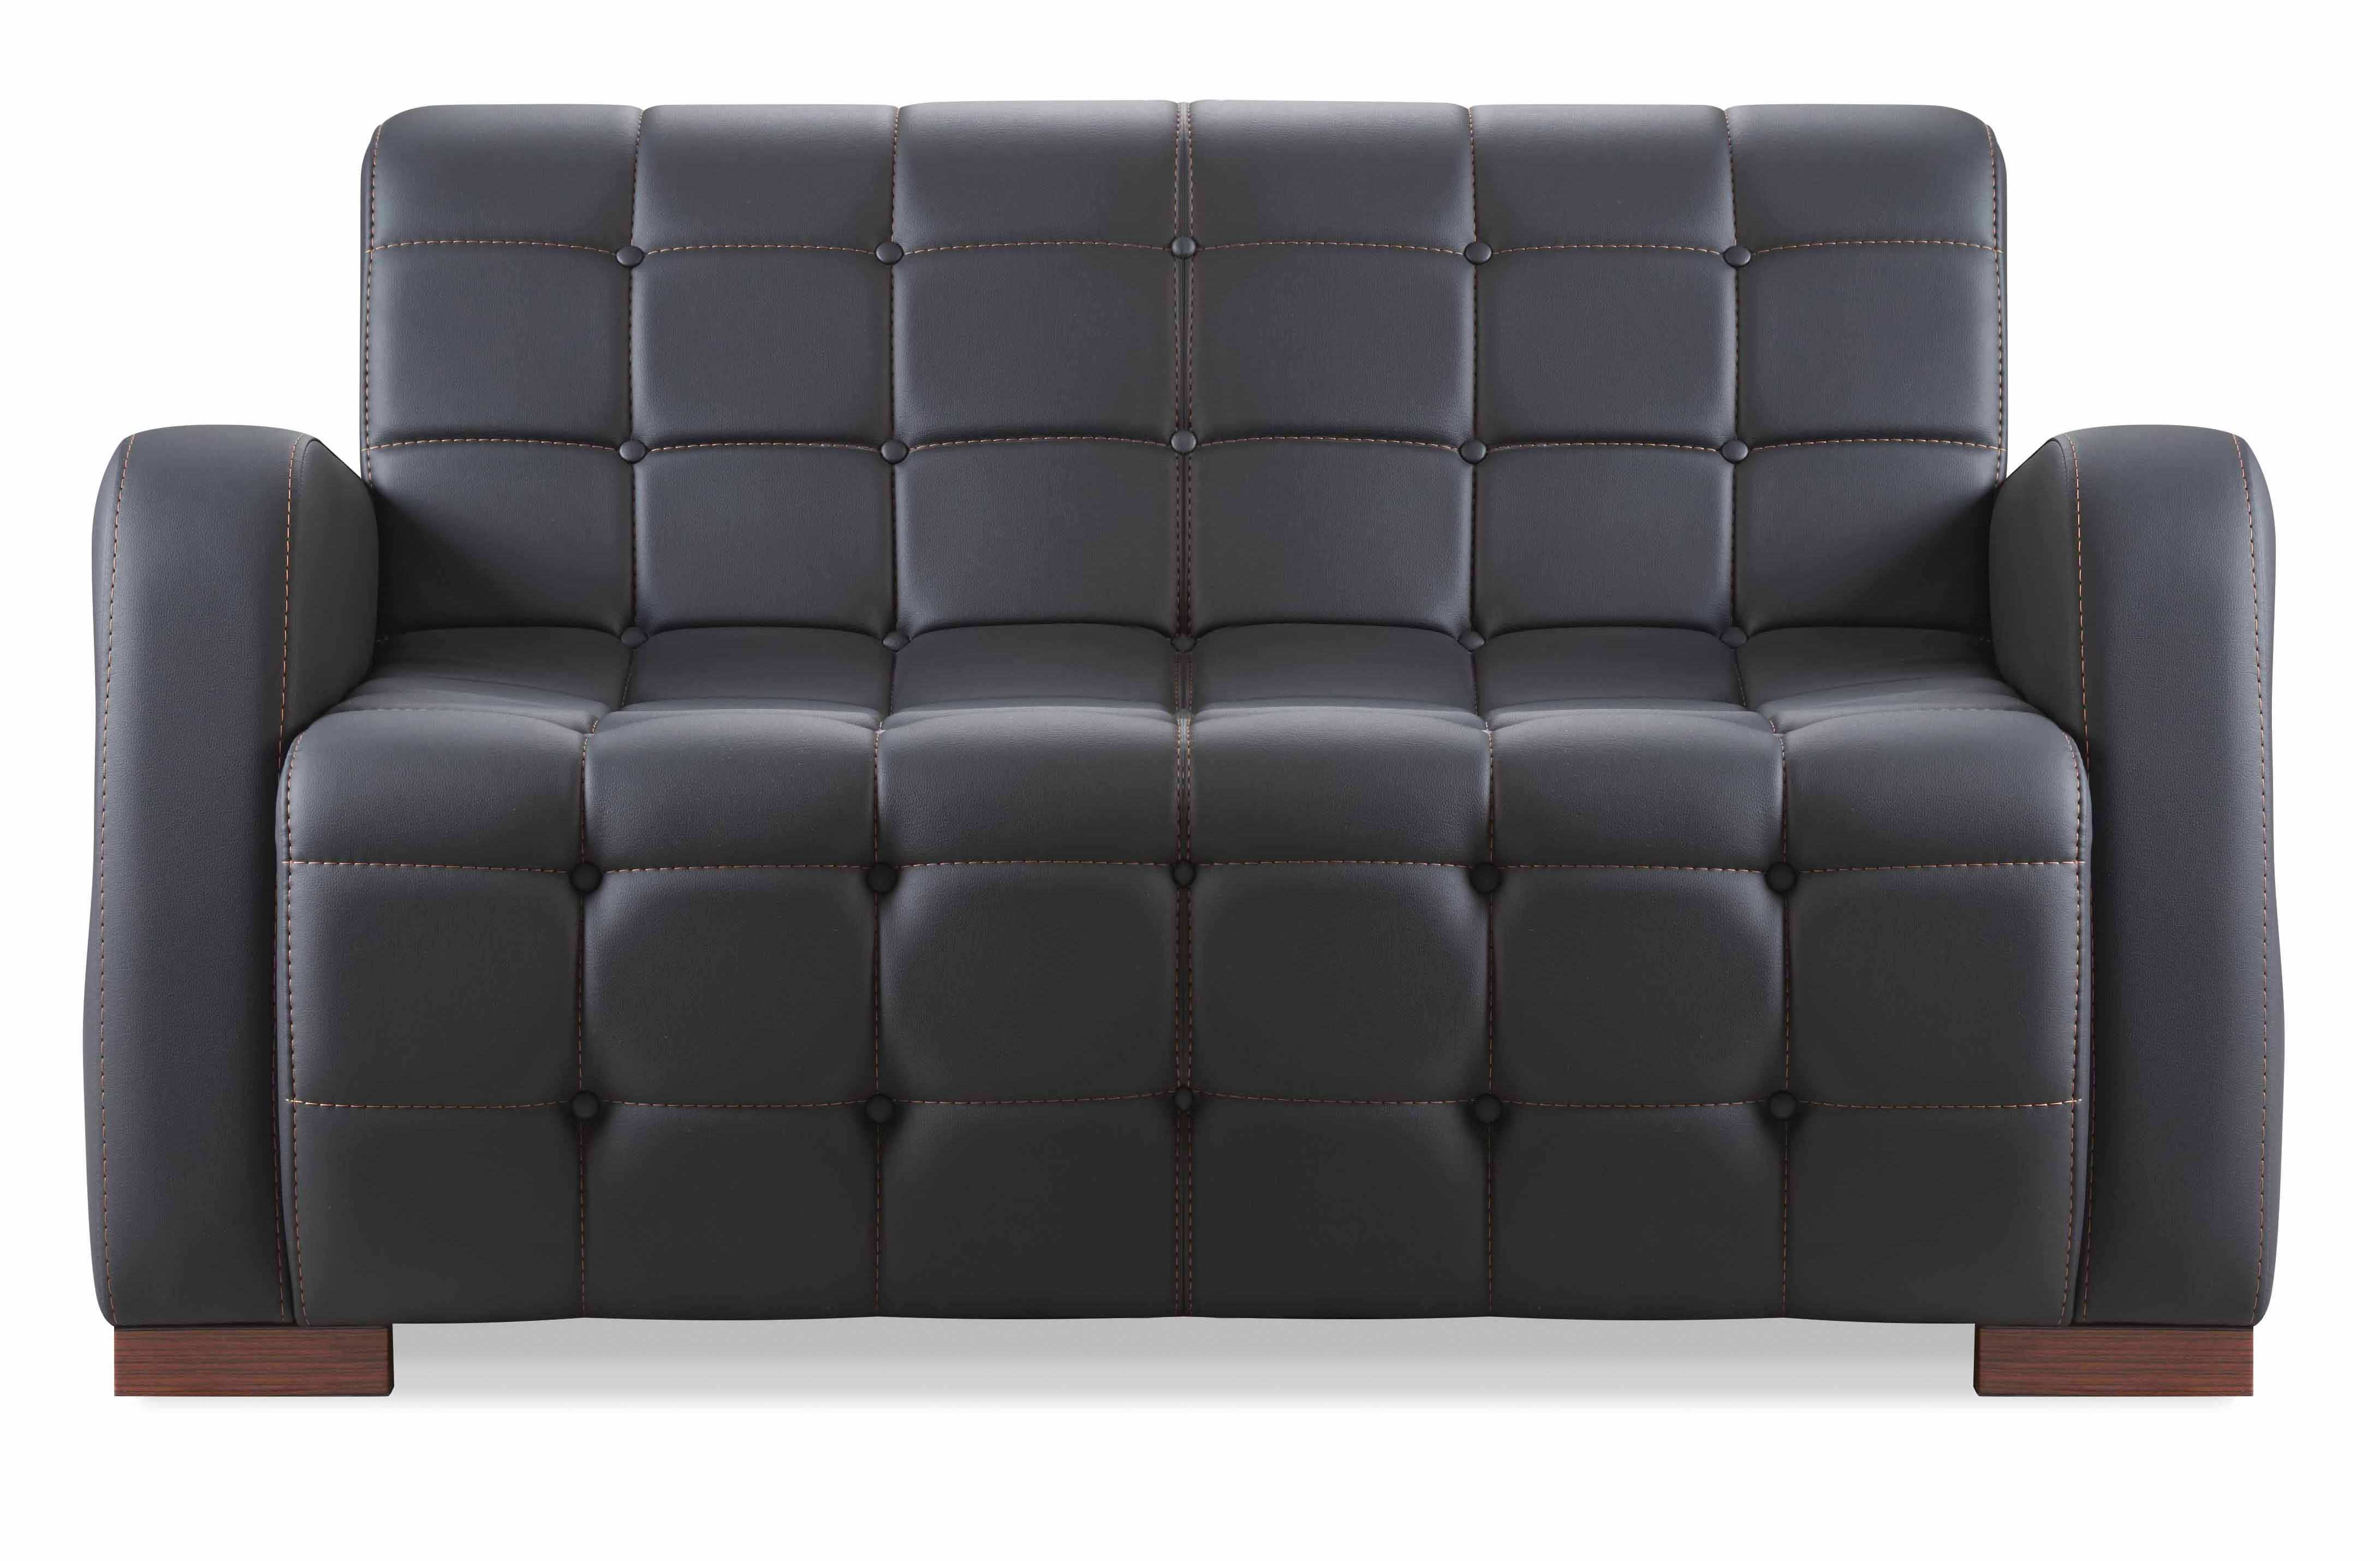 ikon sofa 2 sitzer schwarz g nstig kaufen m bel star. Black Bedroom Furniture Sets. Home Design Ideas